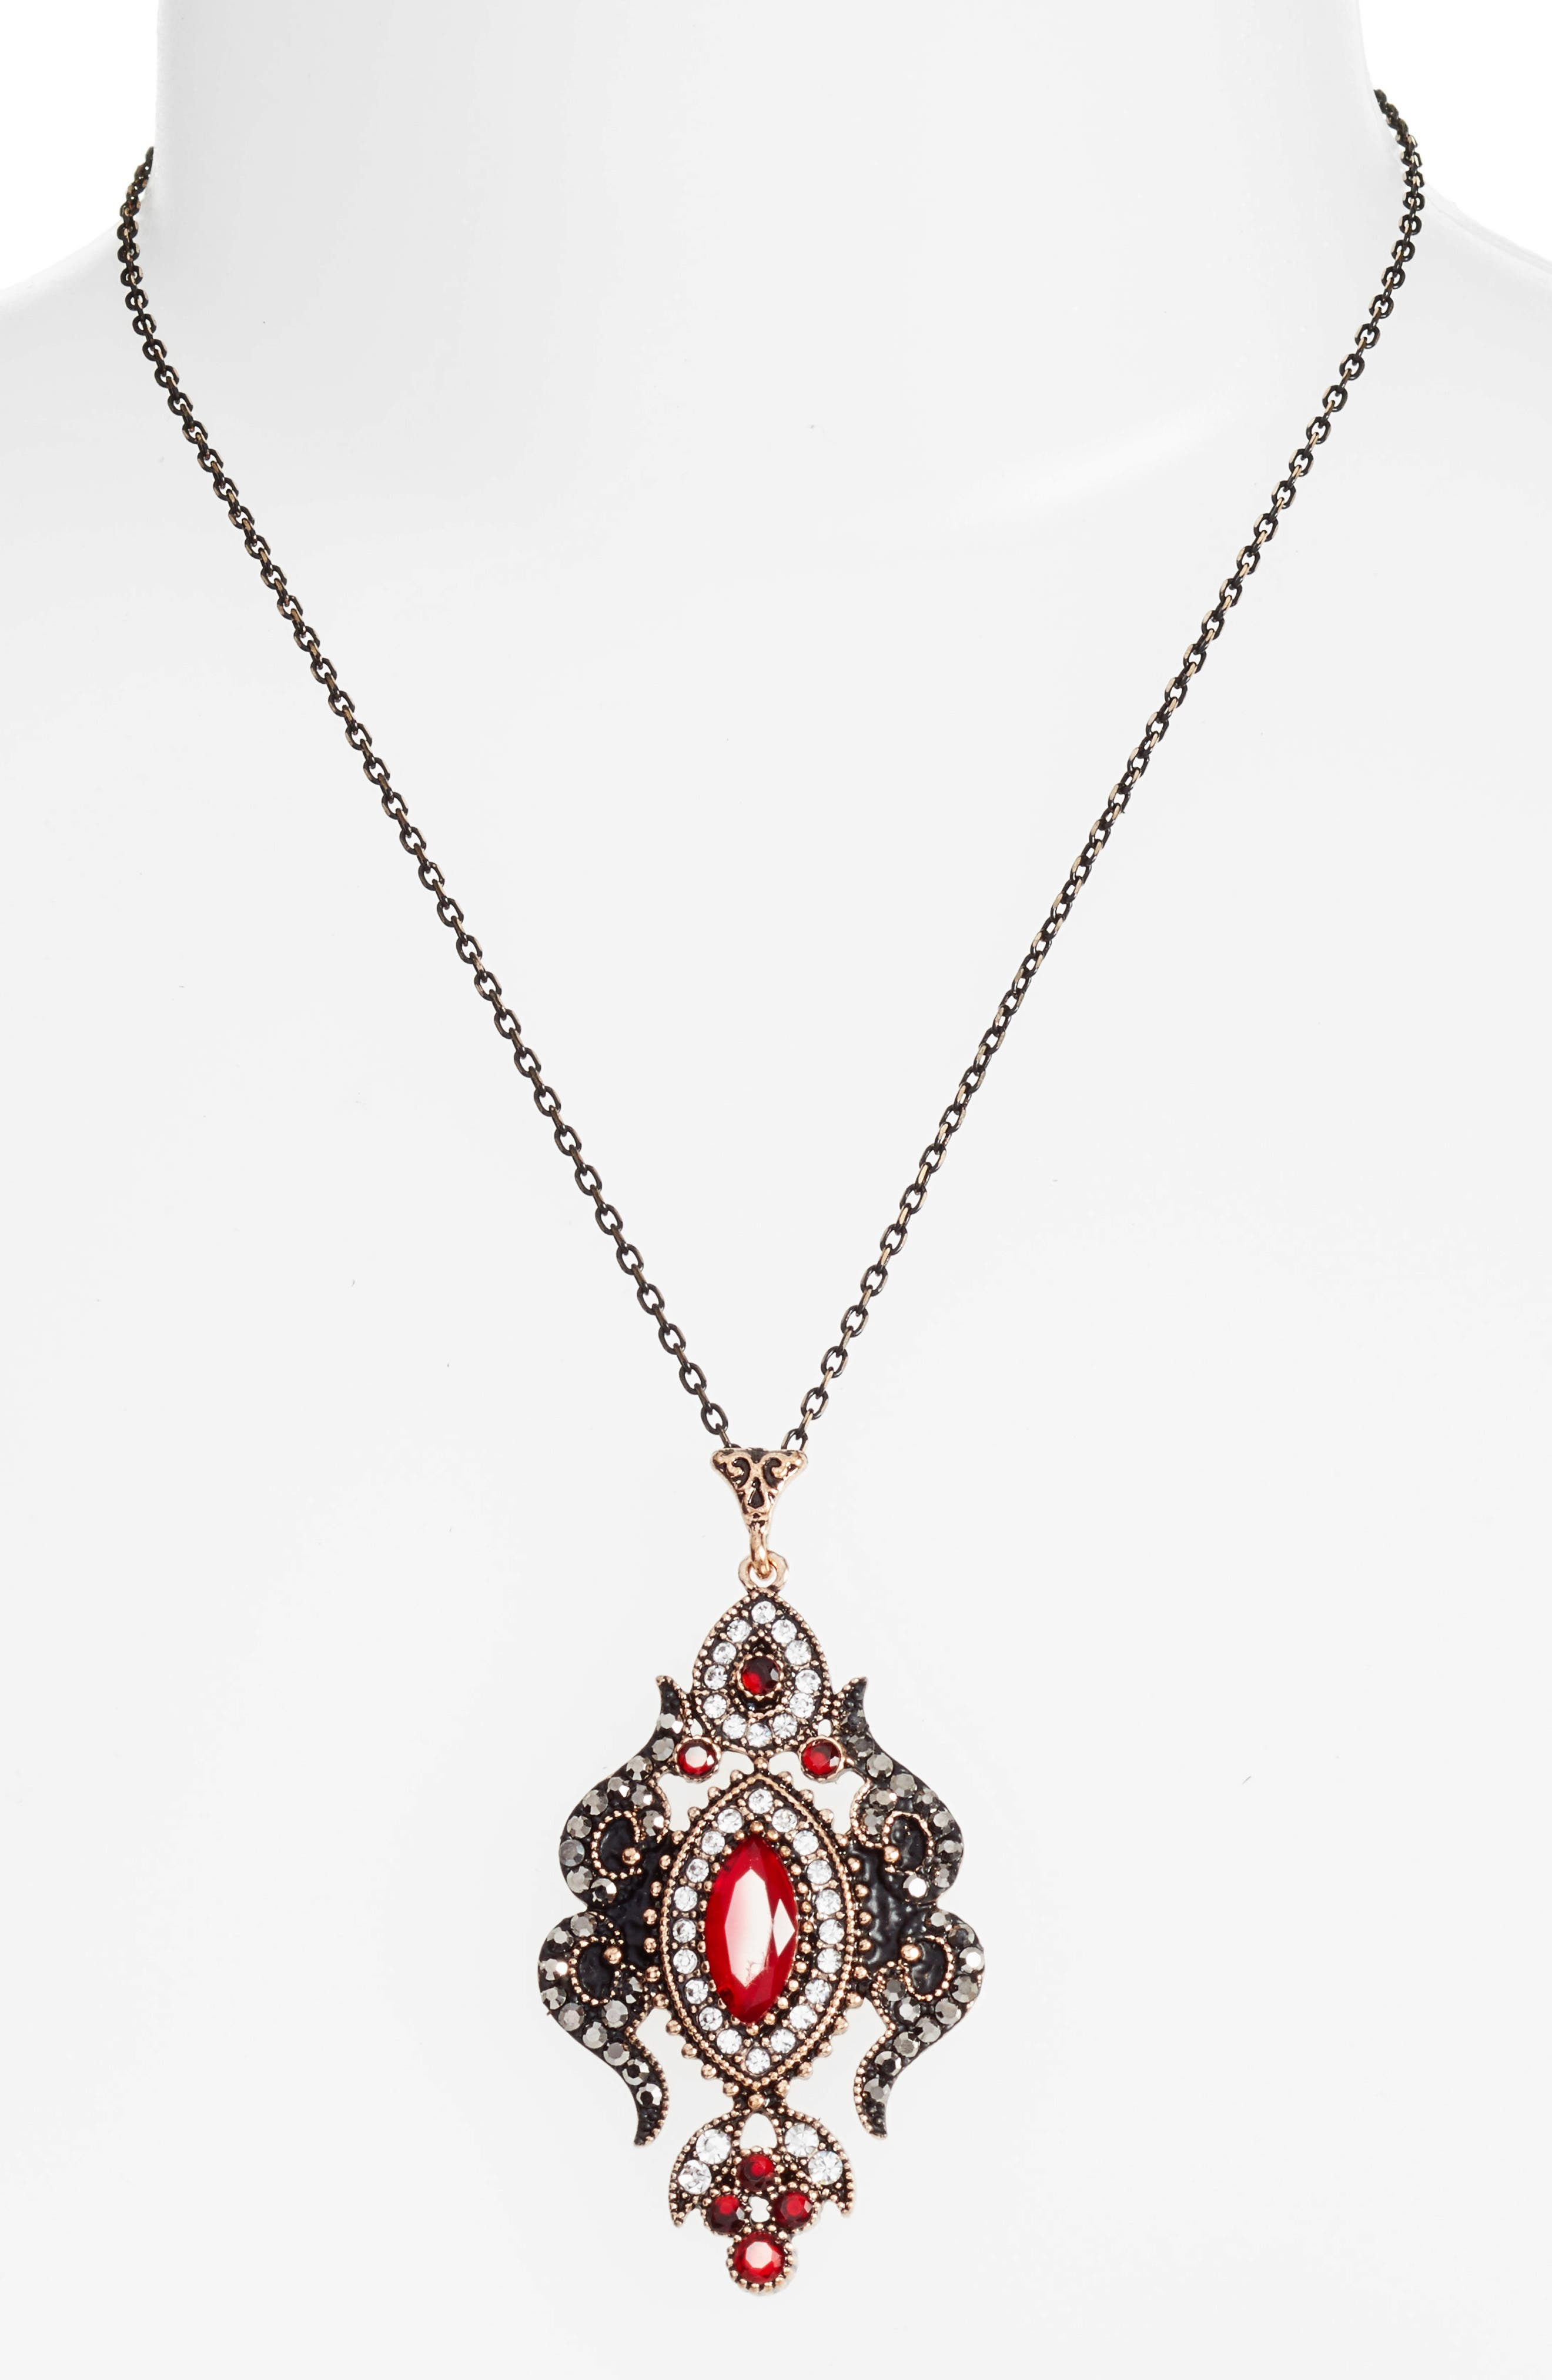 Sareh Nouri Kiana Jewel Pendant Necklace